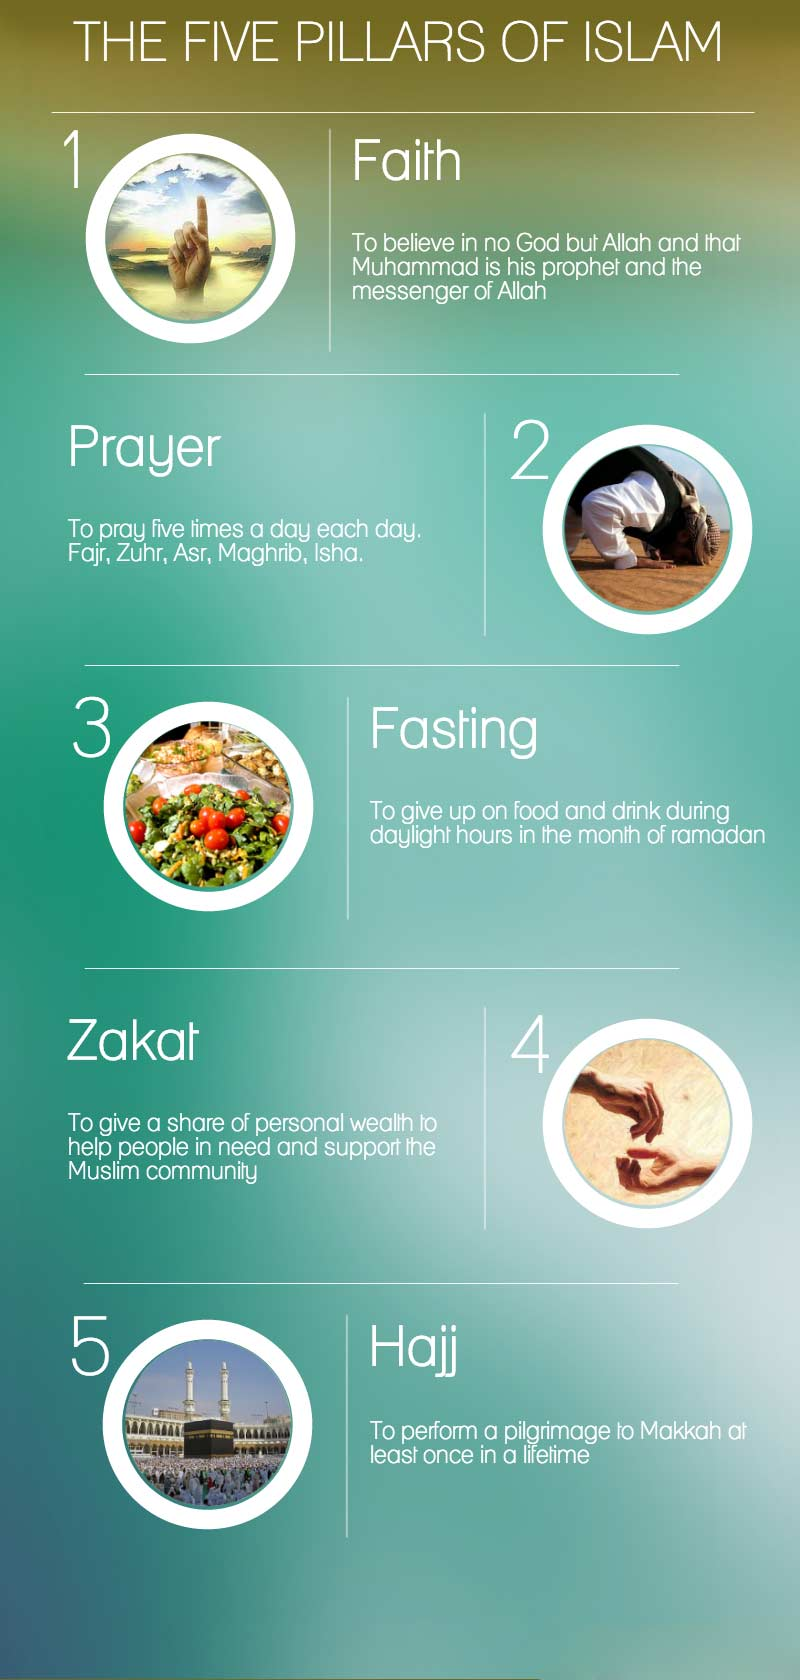 The-five-pillars-of-Islam